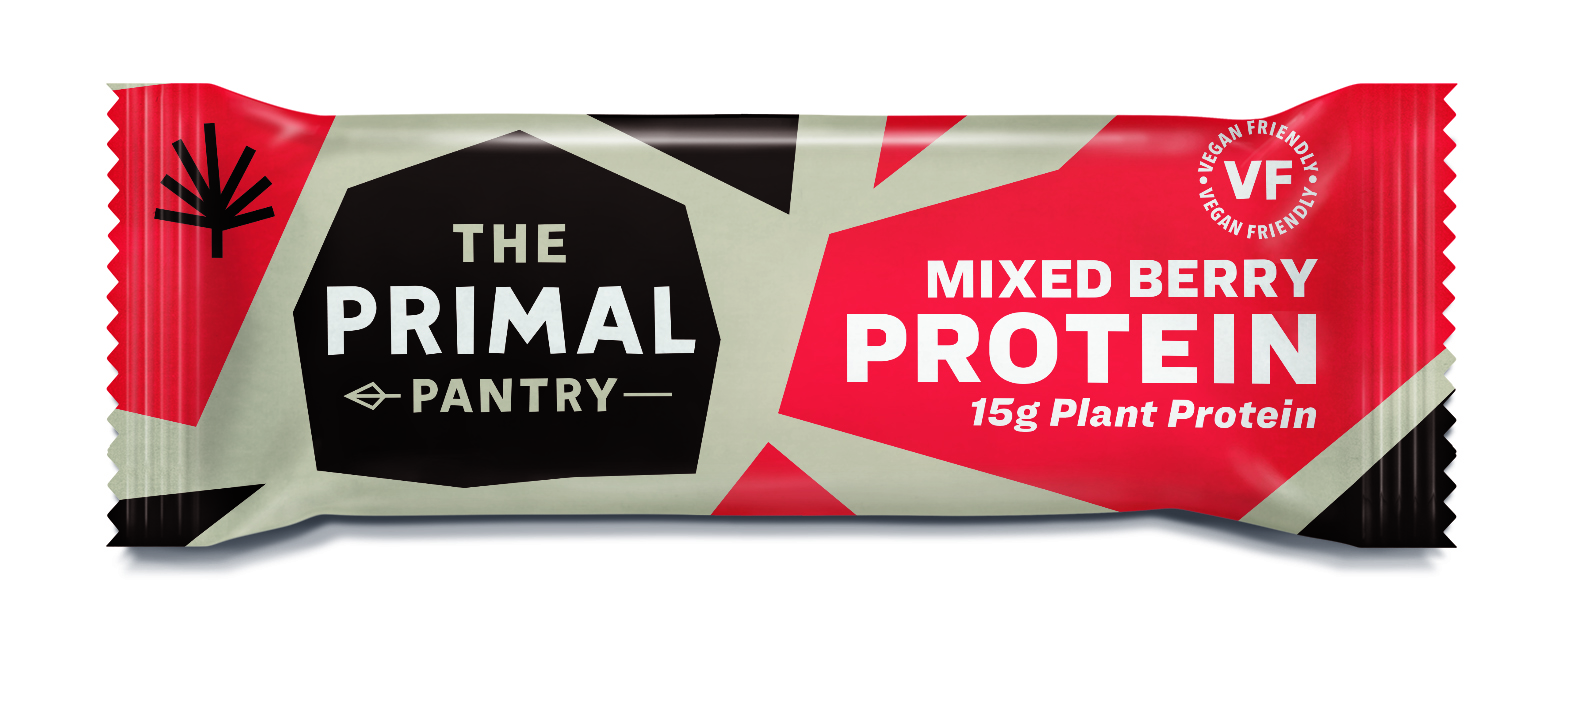 The Primal Pantry Protein Bars - Adding hemp to your diet couldn't be easier or more delicious. The Primal Pantry offers a selection of vegan hemp-packed protein bars in four delicious flavours (Mixed Berry, Cocoa Brownie, Cocoa Orange and Double Espresso). Perfect for breakfast and as a snack.